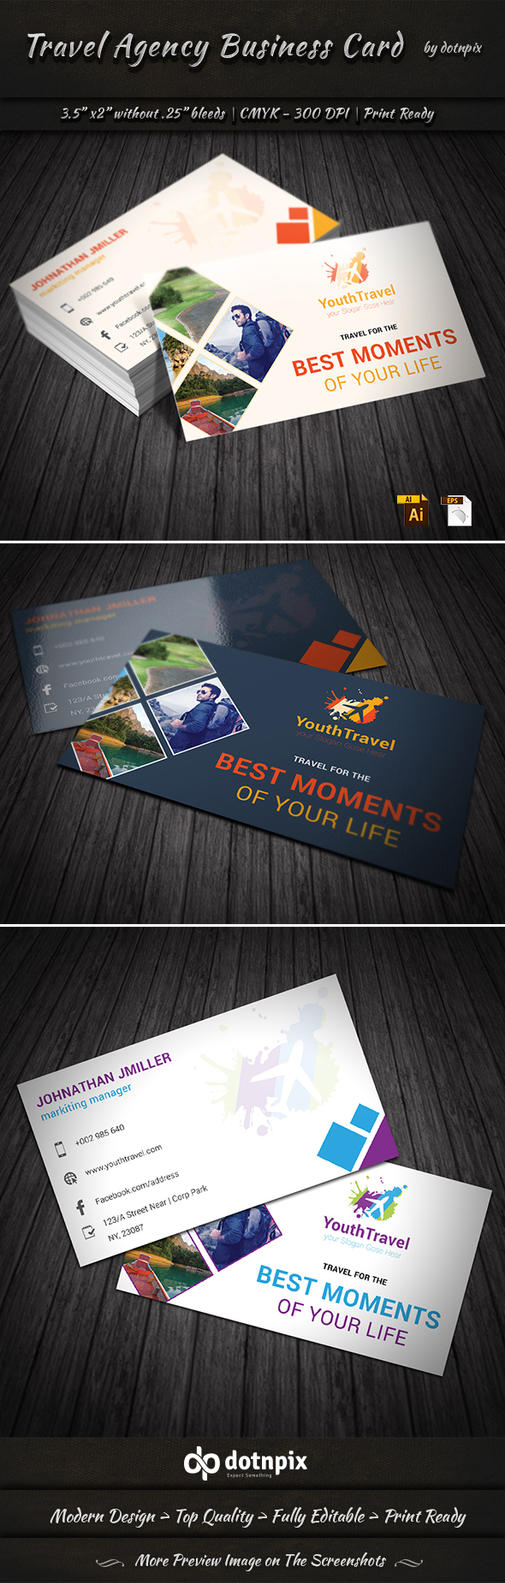 Travel Agency Business Card by dotnpix